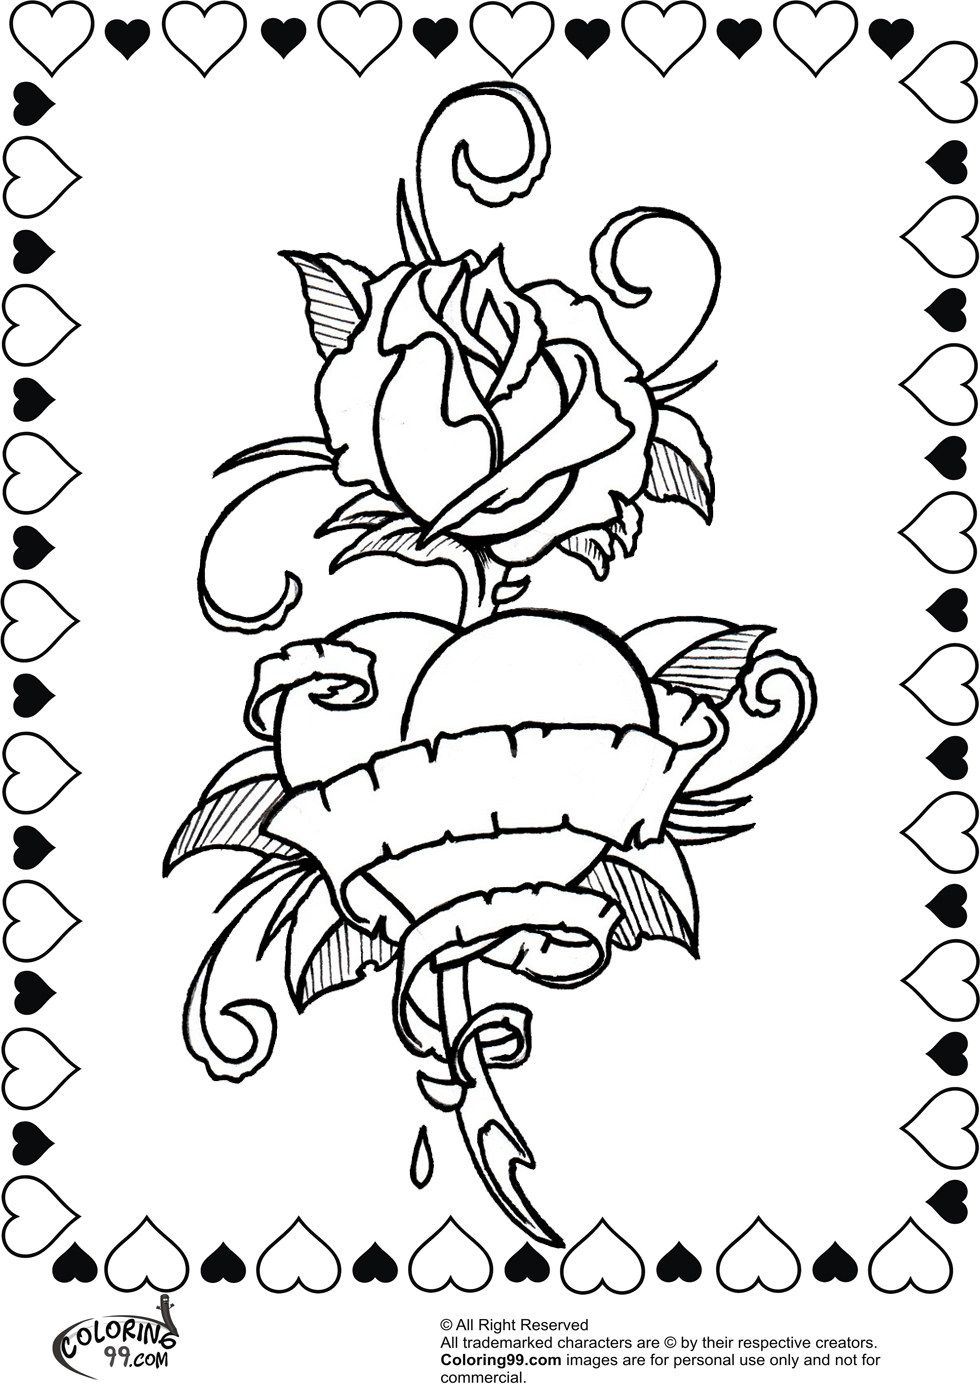 Impeccable image for printable valentines coloring pages